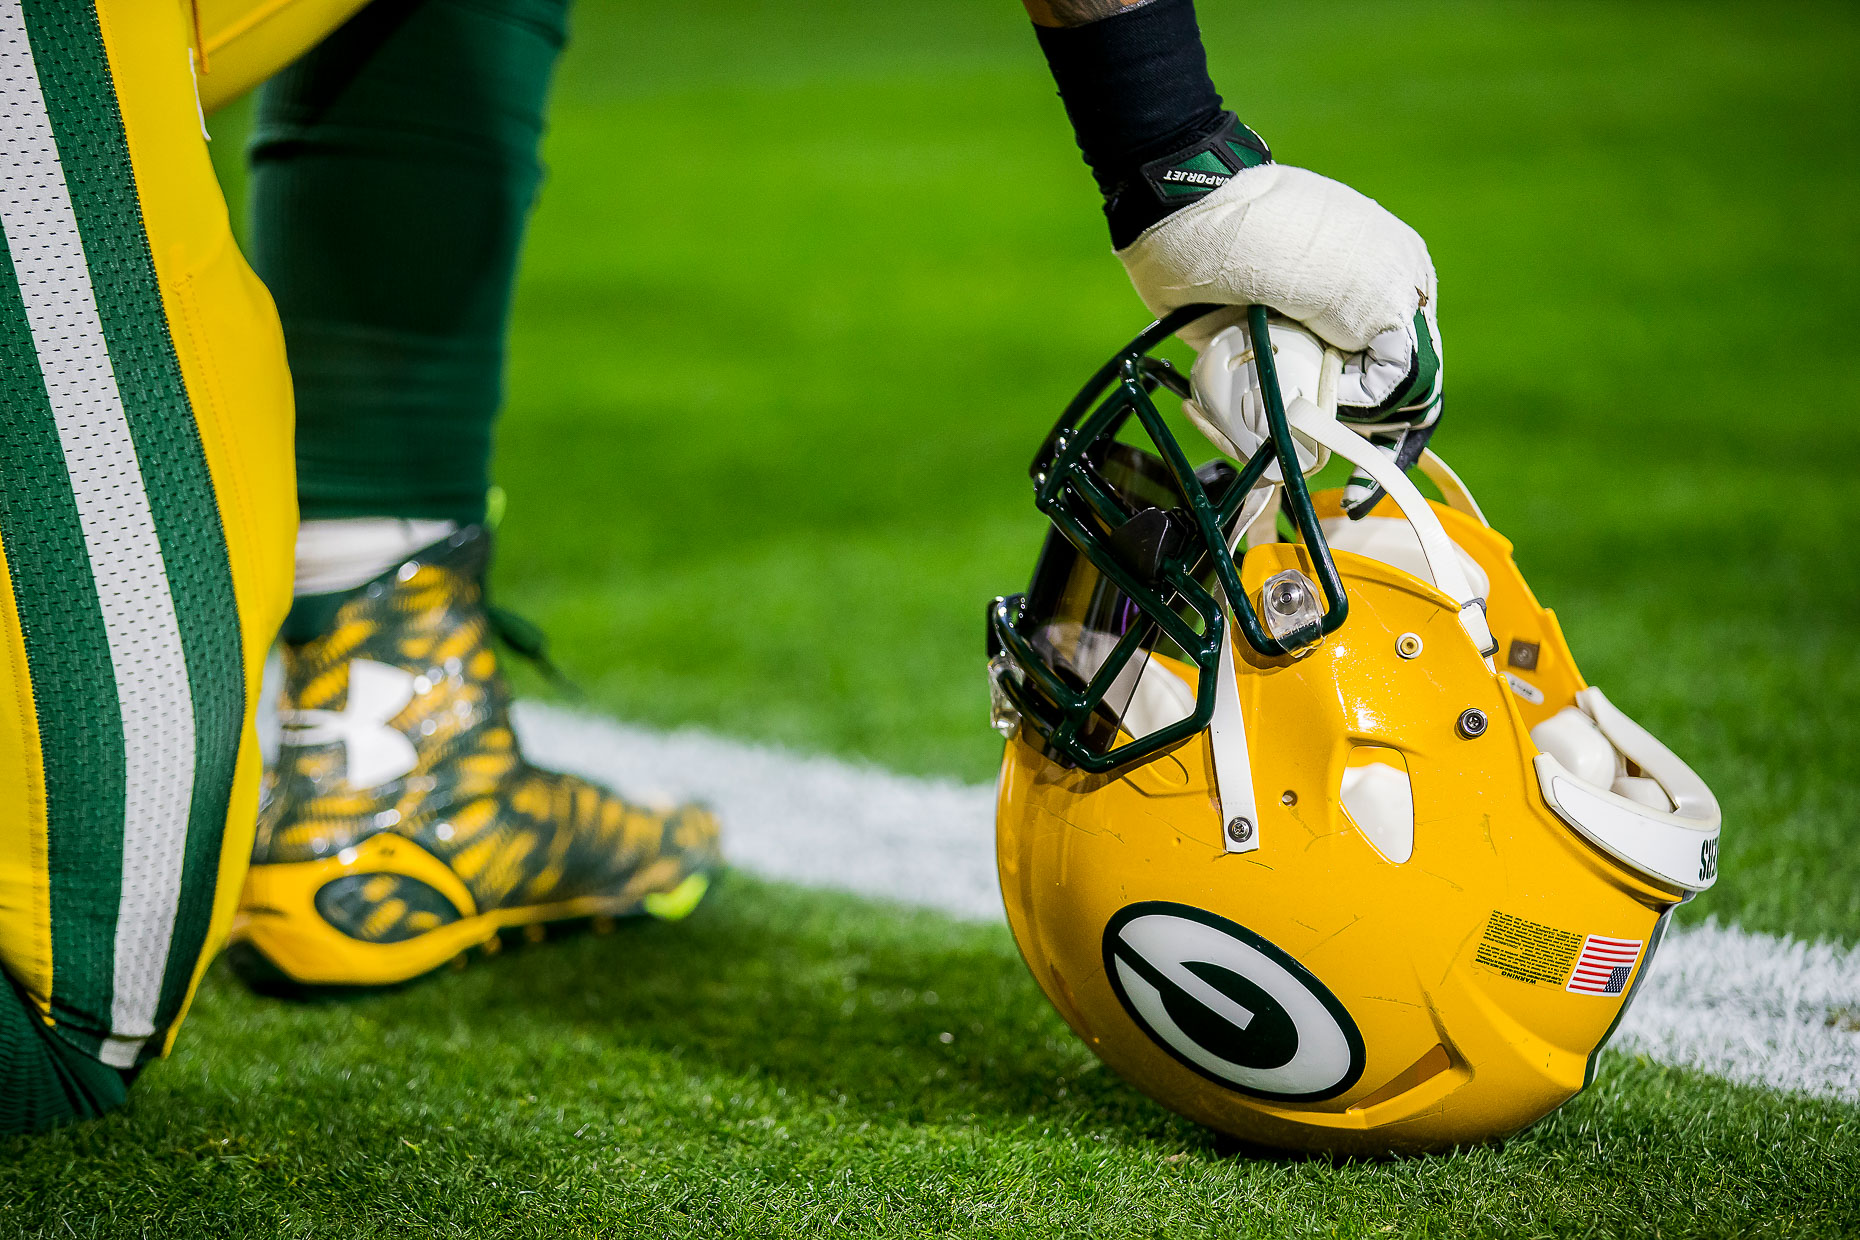 Green Bay Packers - Commercial Sports Photographer 10